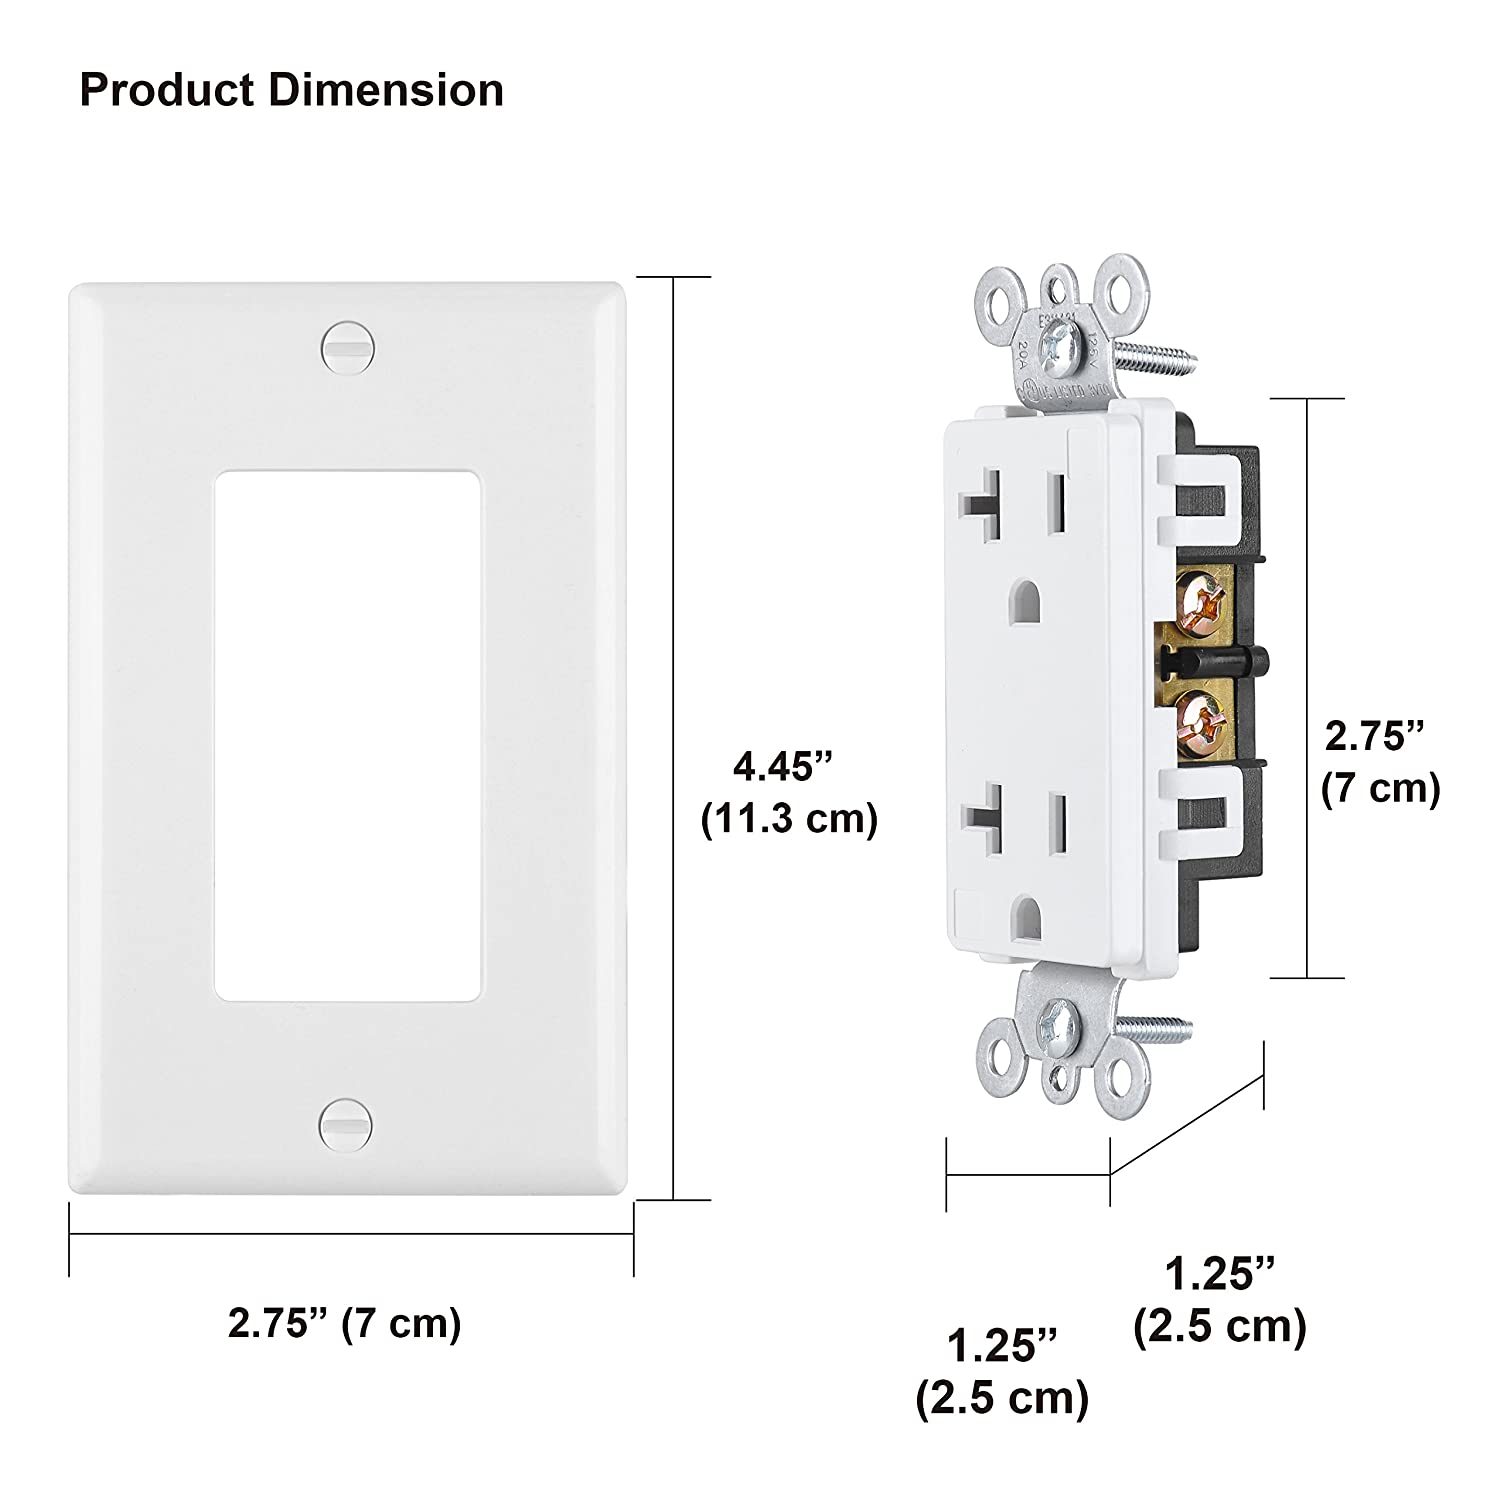 [4 Pack] BESTTEN 20A/2500W Decor Receptacle, Standard Decorative Electrical Wall Outlet, Wall Plate Included, UL Certified, White